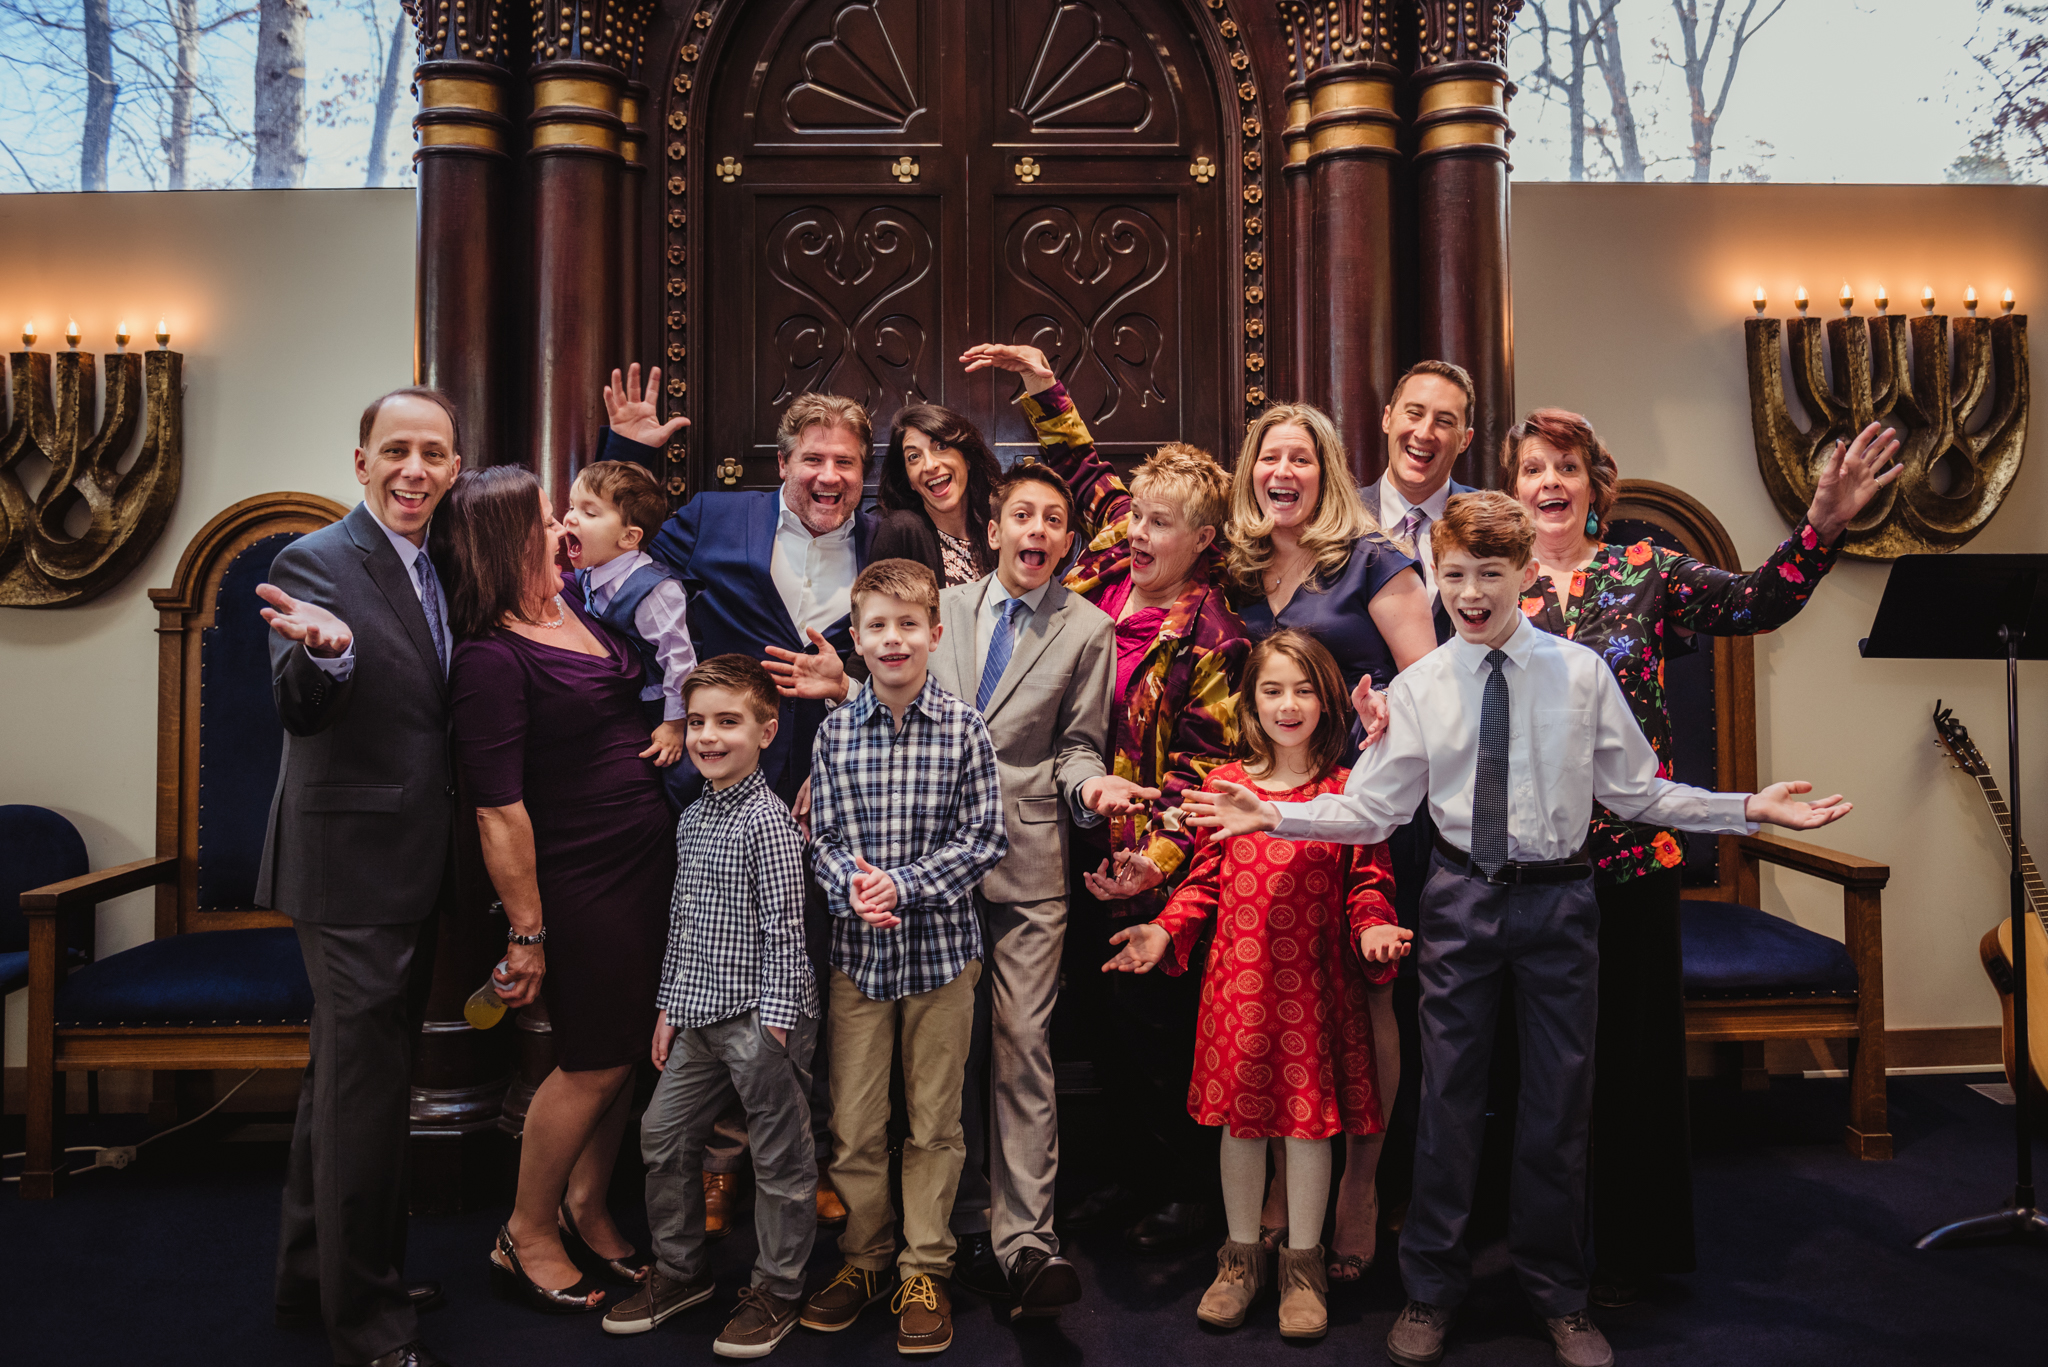 Noah's Family celebrates together on the bema before he becomes bar mitzvah at Temple Beth Or!